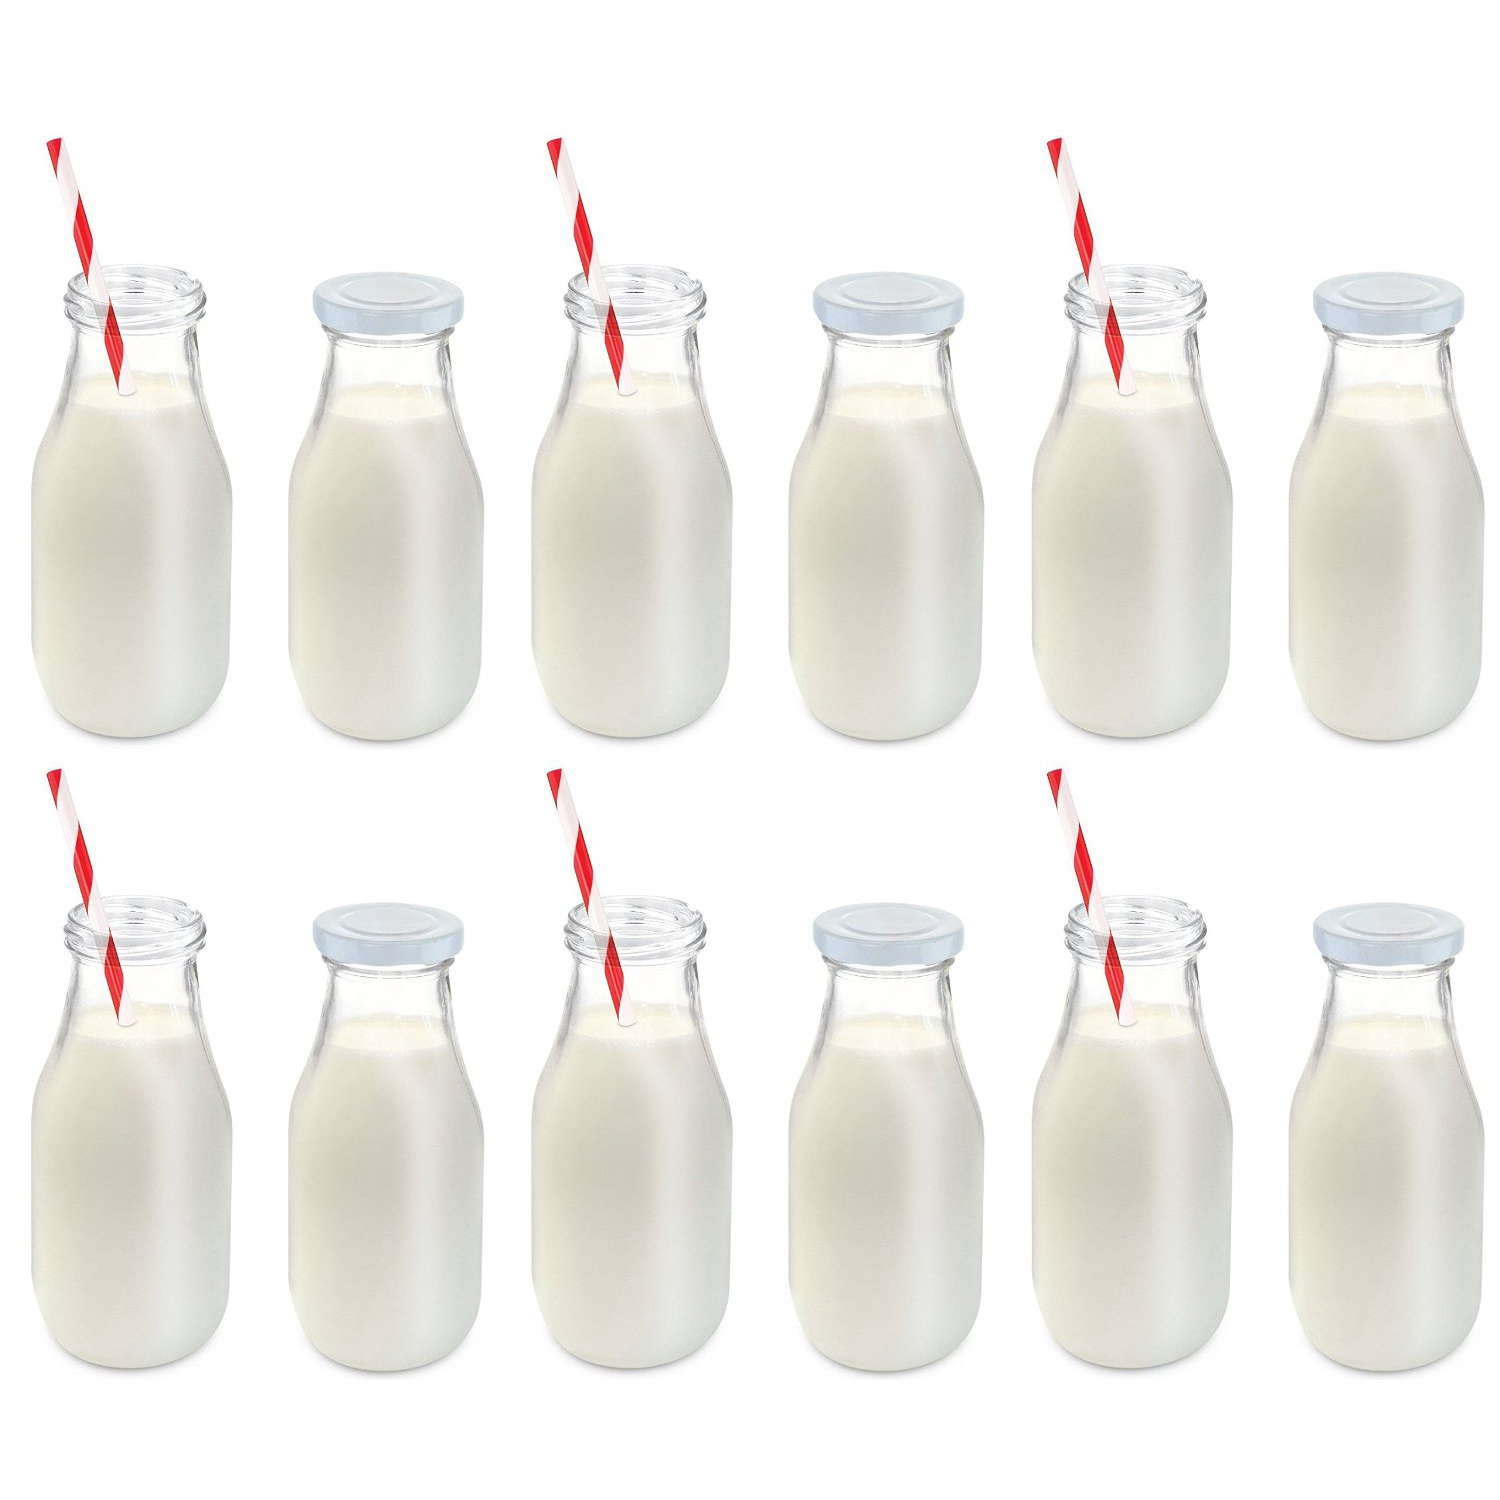 Milk Bottles For Decoration 11 Oz Glass Milk Bottle Set Of 12